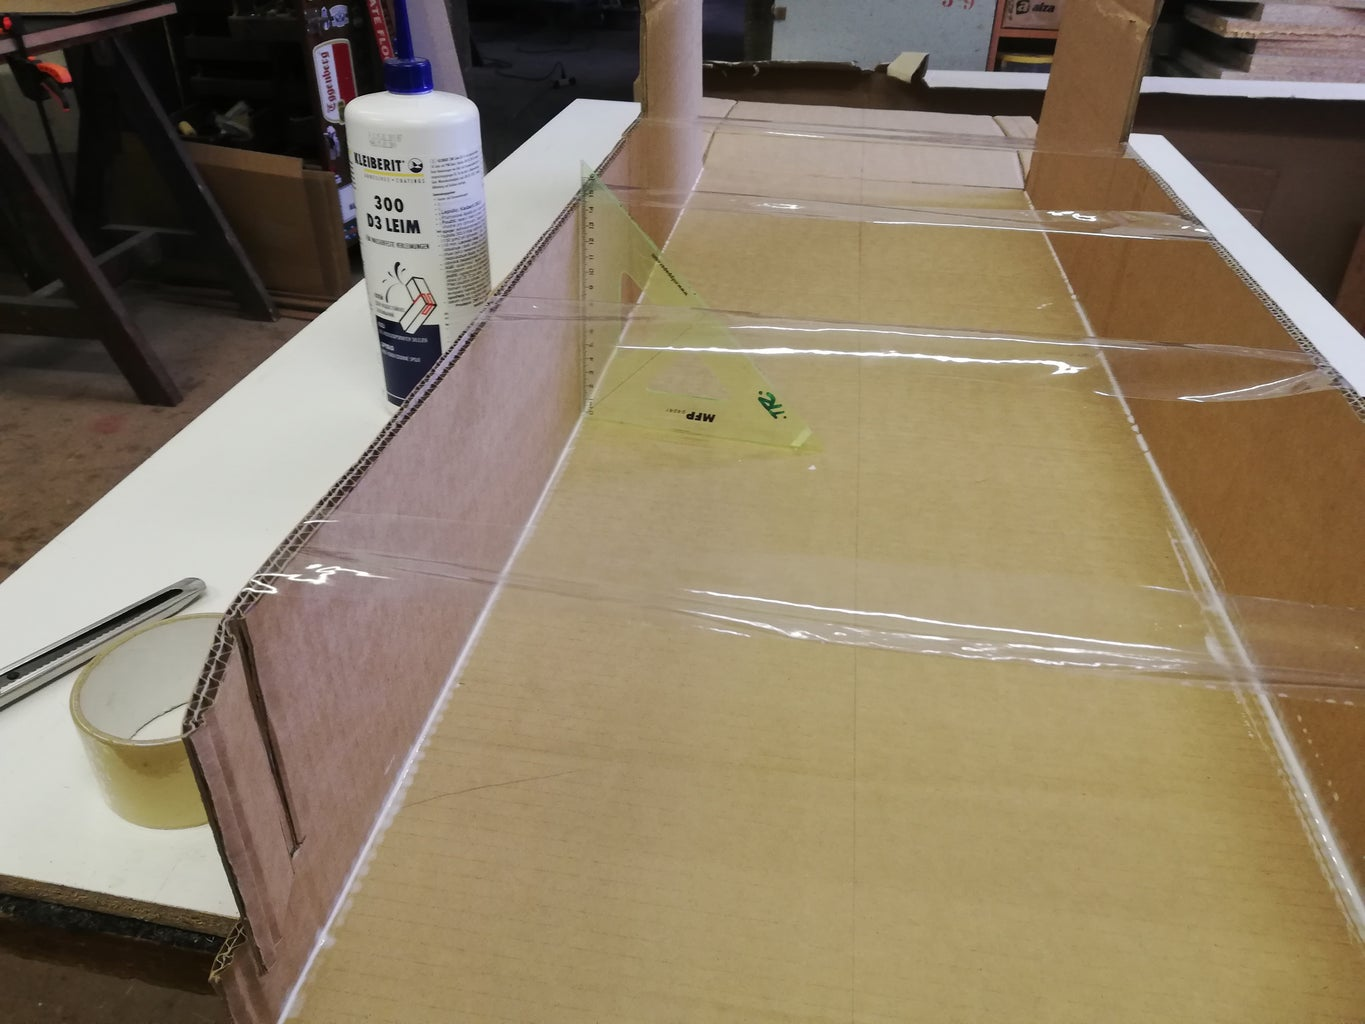 Main Part - Gluing Together